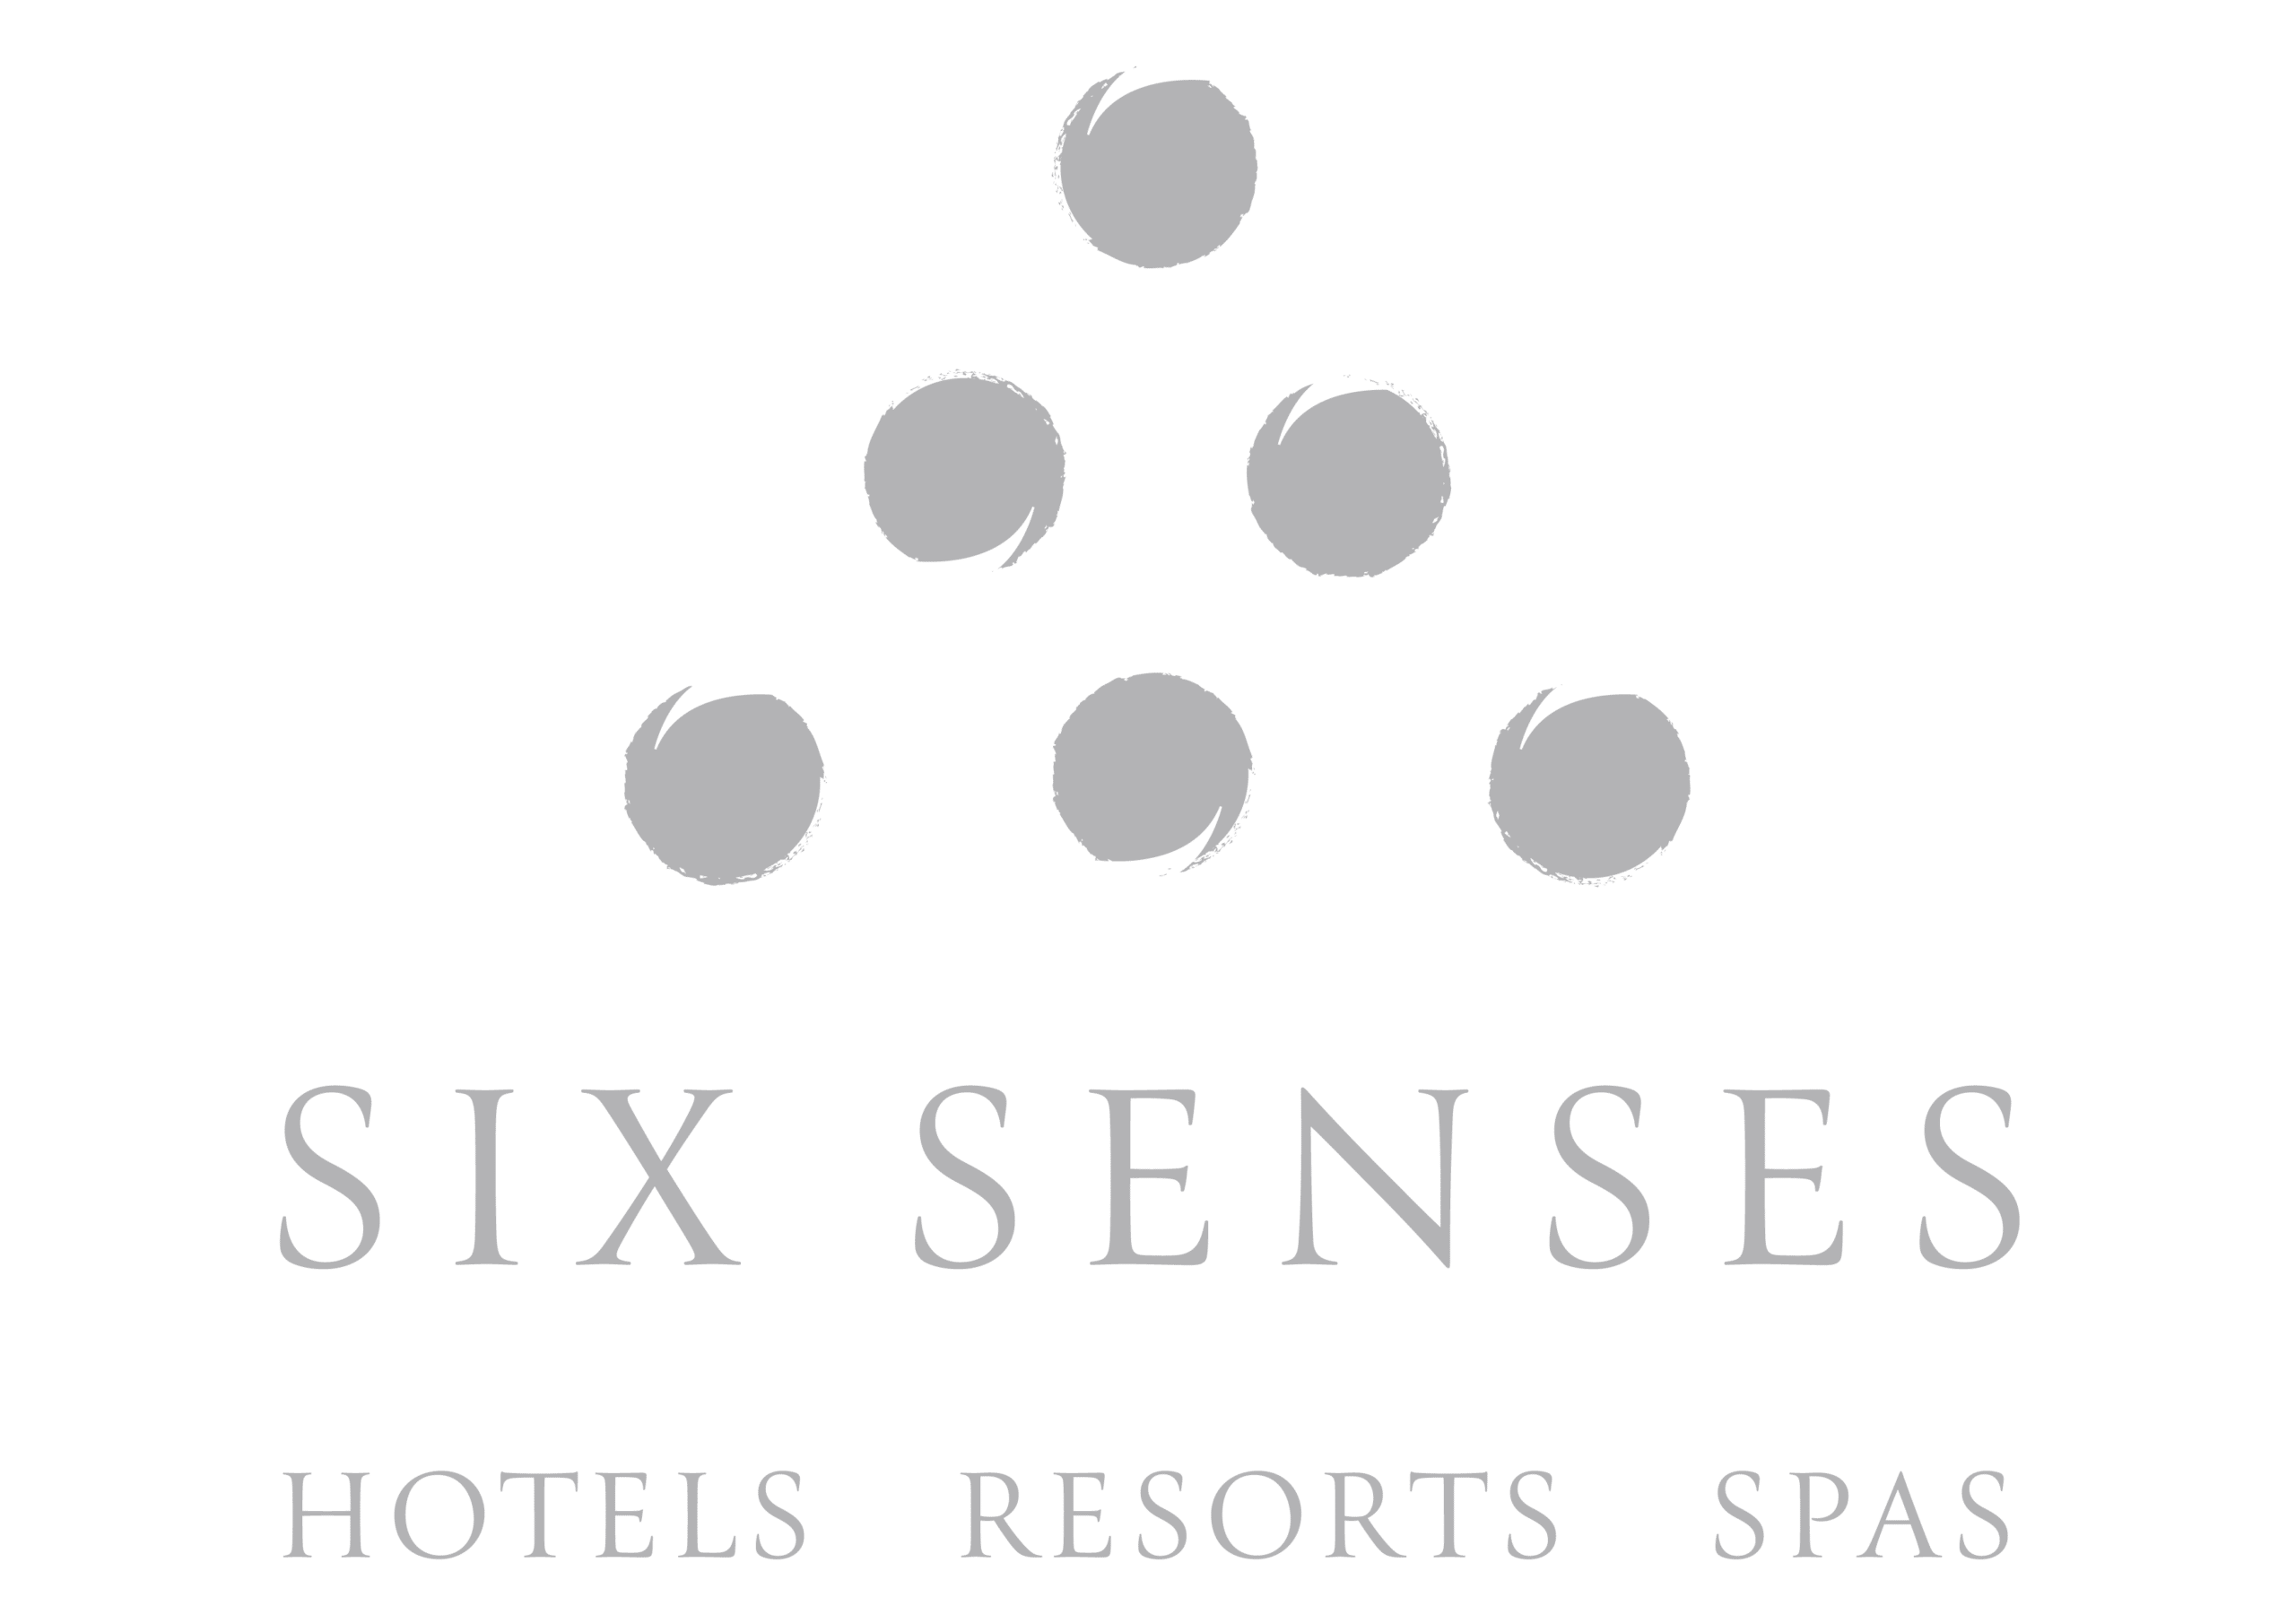 Six Senses Brand Logo